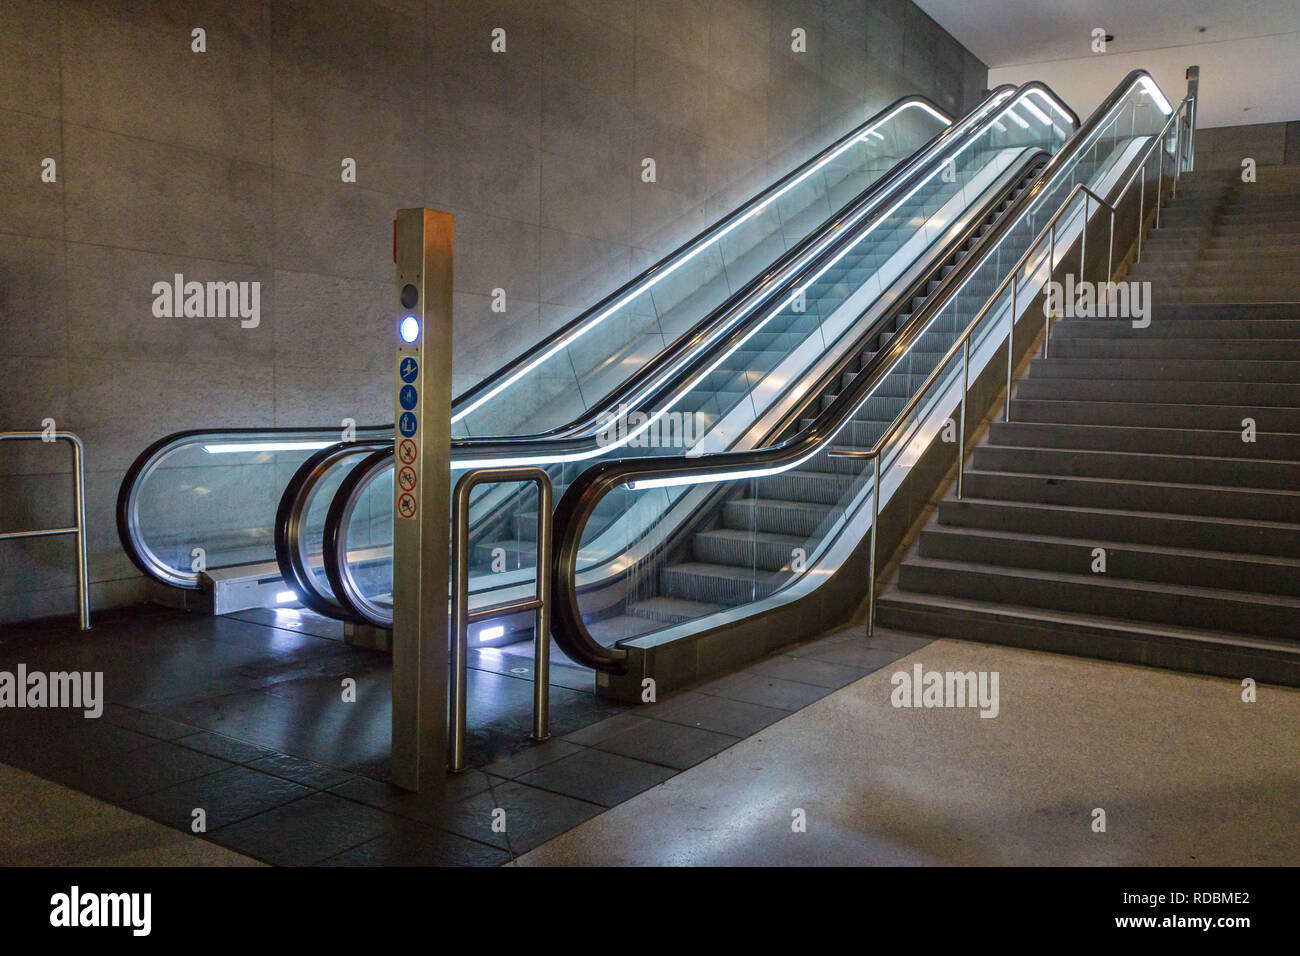 subway escalators or rolling stairways - moving stairs - Stock Image